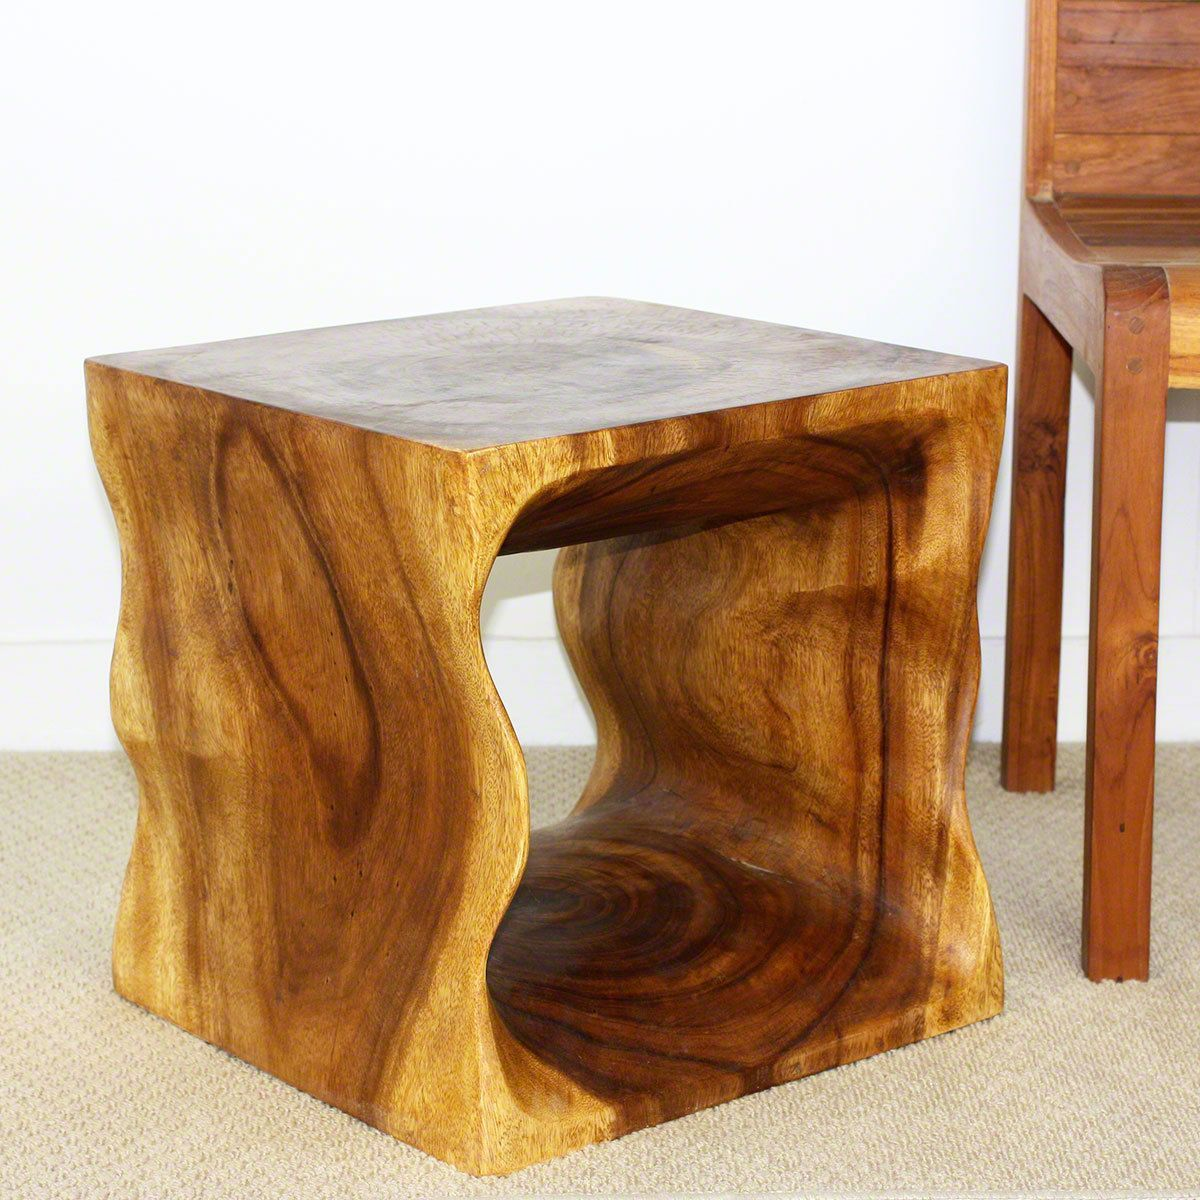 haussmann handmade oak oil acacia wood cube end table accent livos natural and clear brown pilgrim furniture patio umbrella hole insert narrow console rain drum floating living